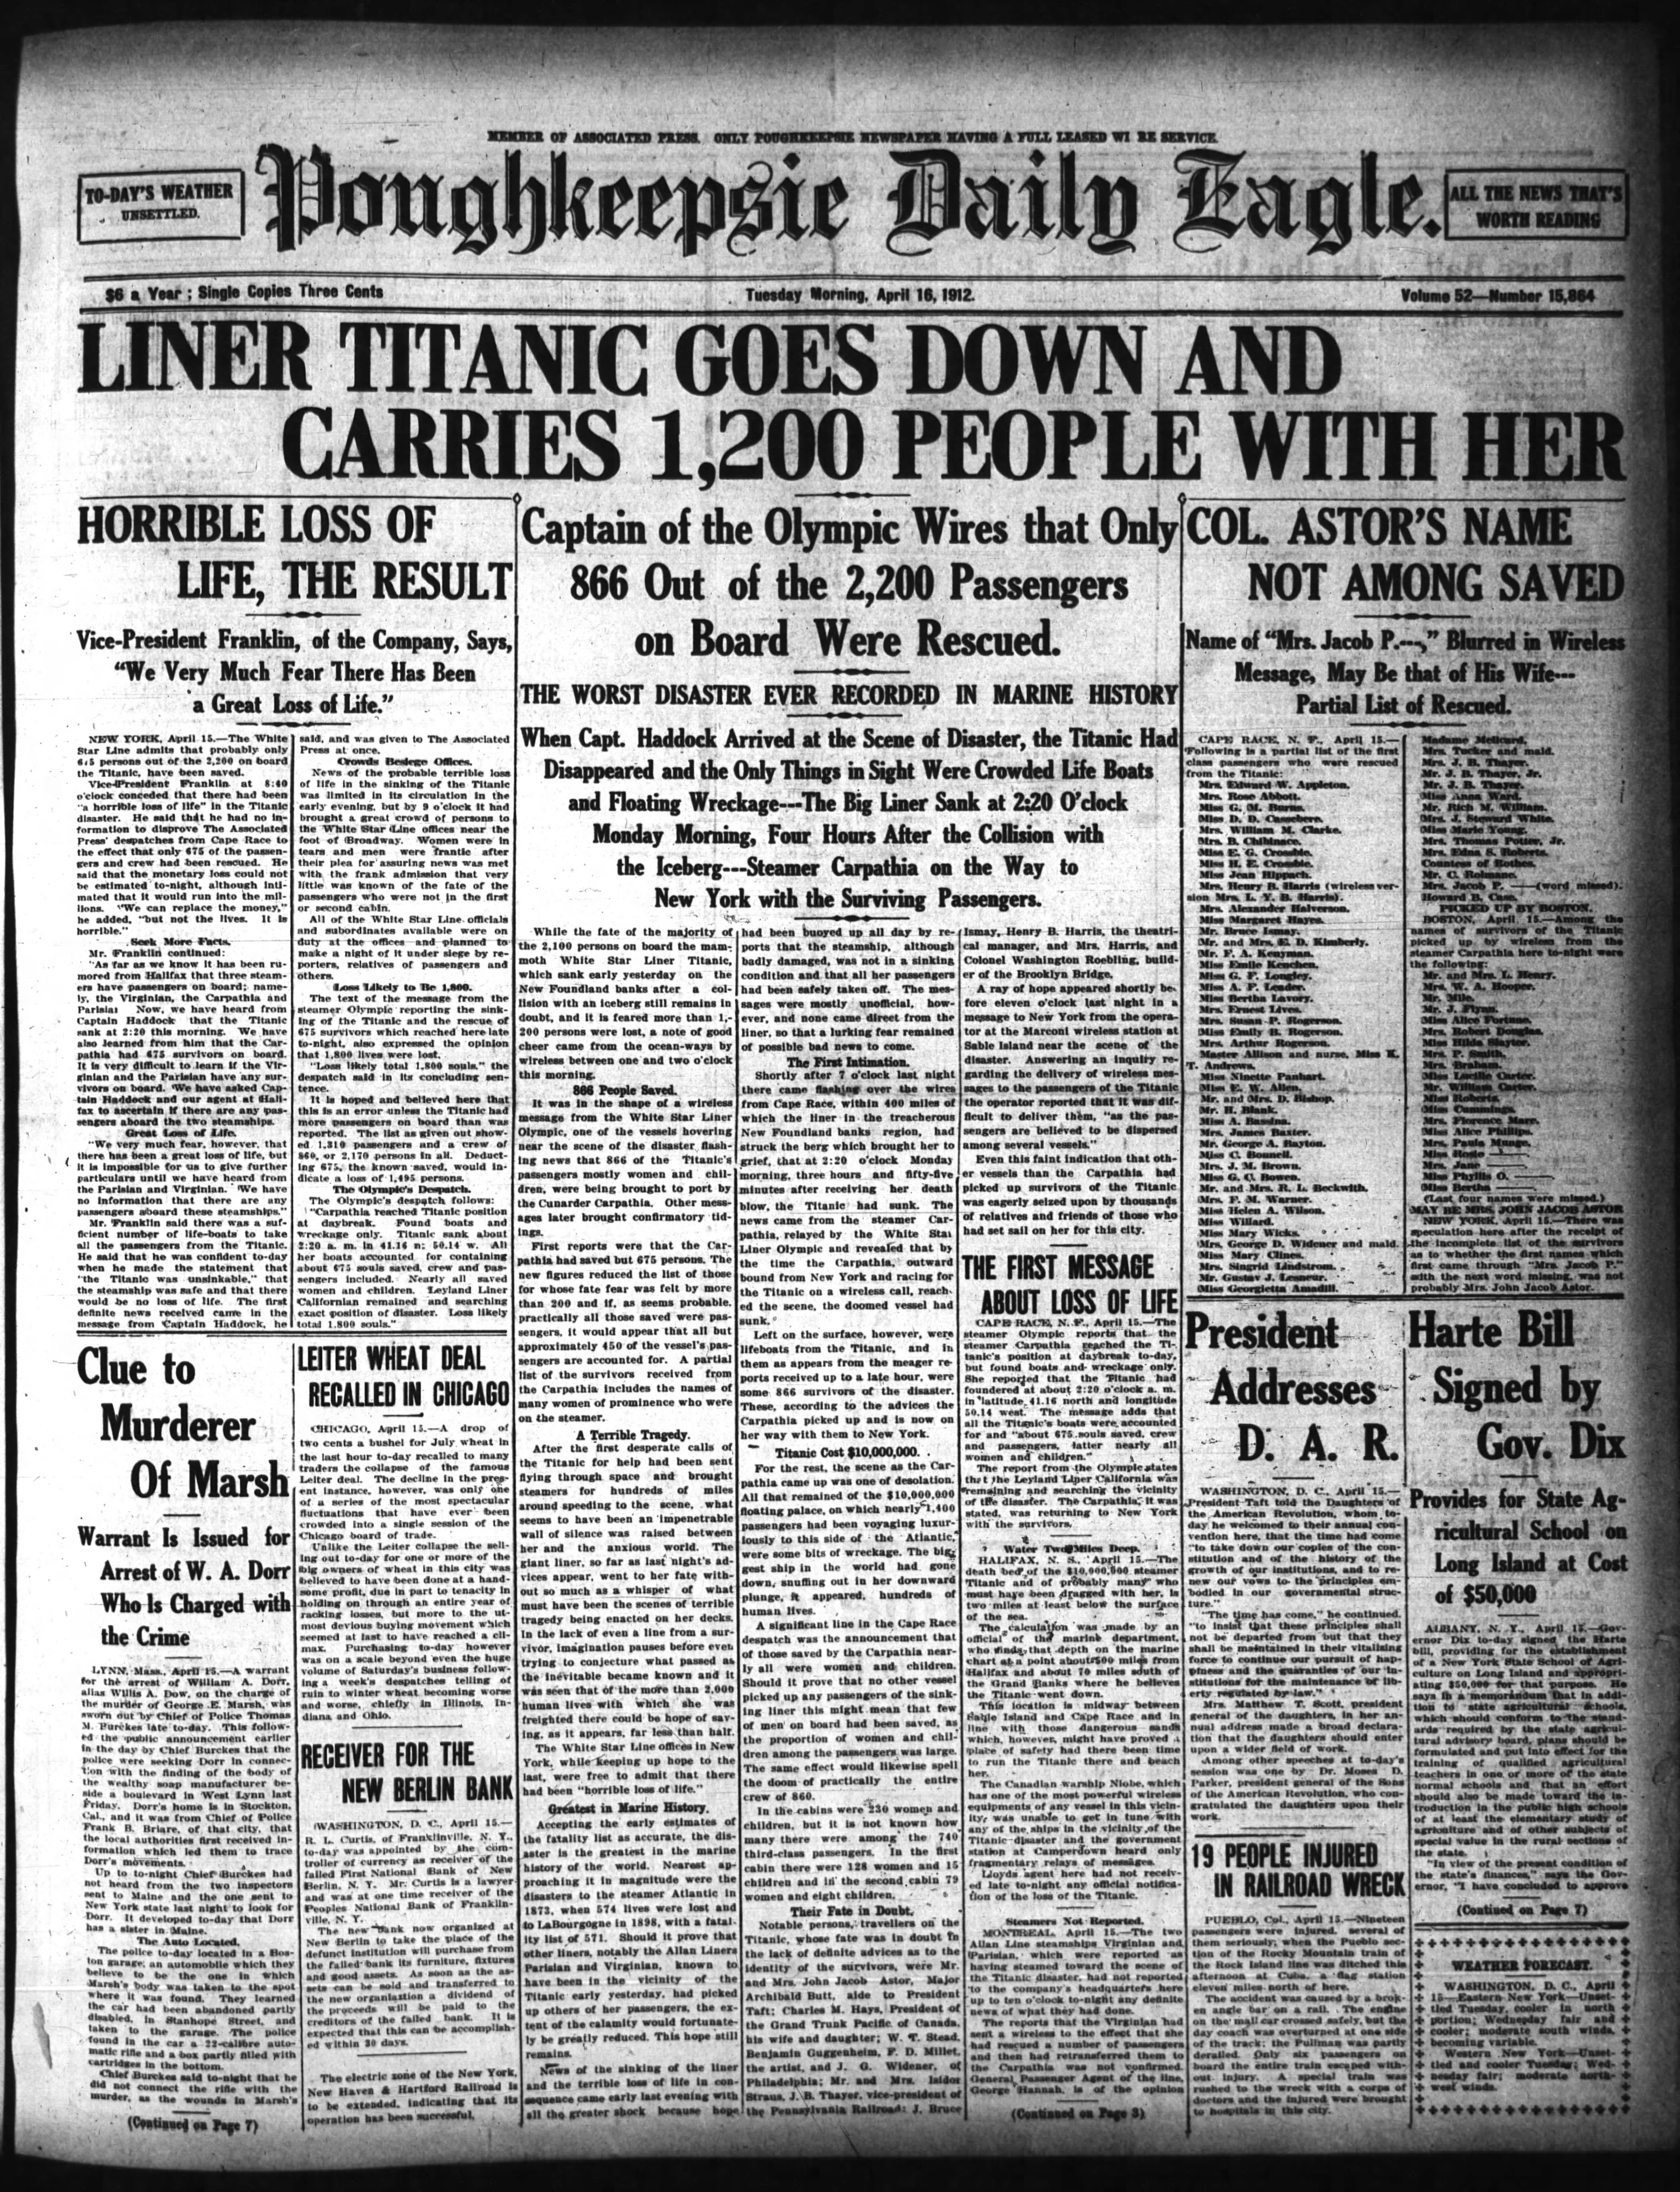 The Poughkeepsie Daily Eagle, a precursor to the Poughkeepsie Journal, reports on the tragic sinking of the Titanic.